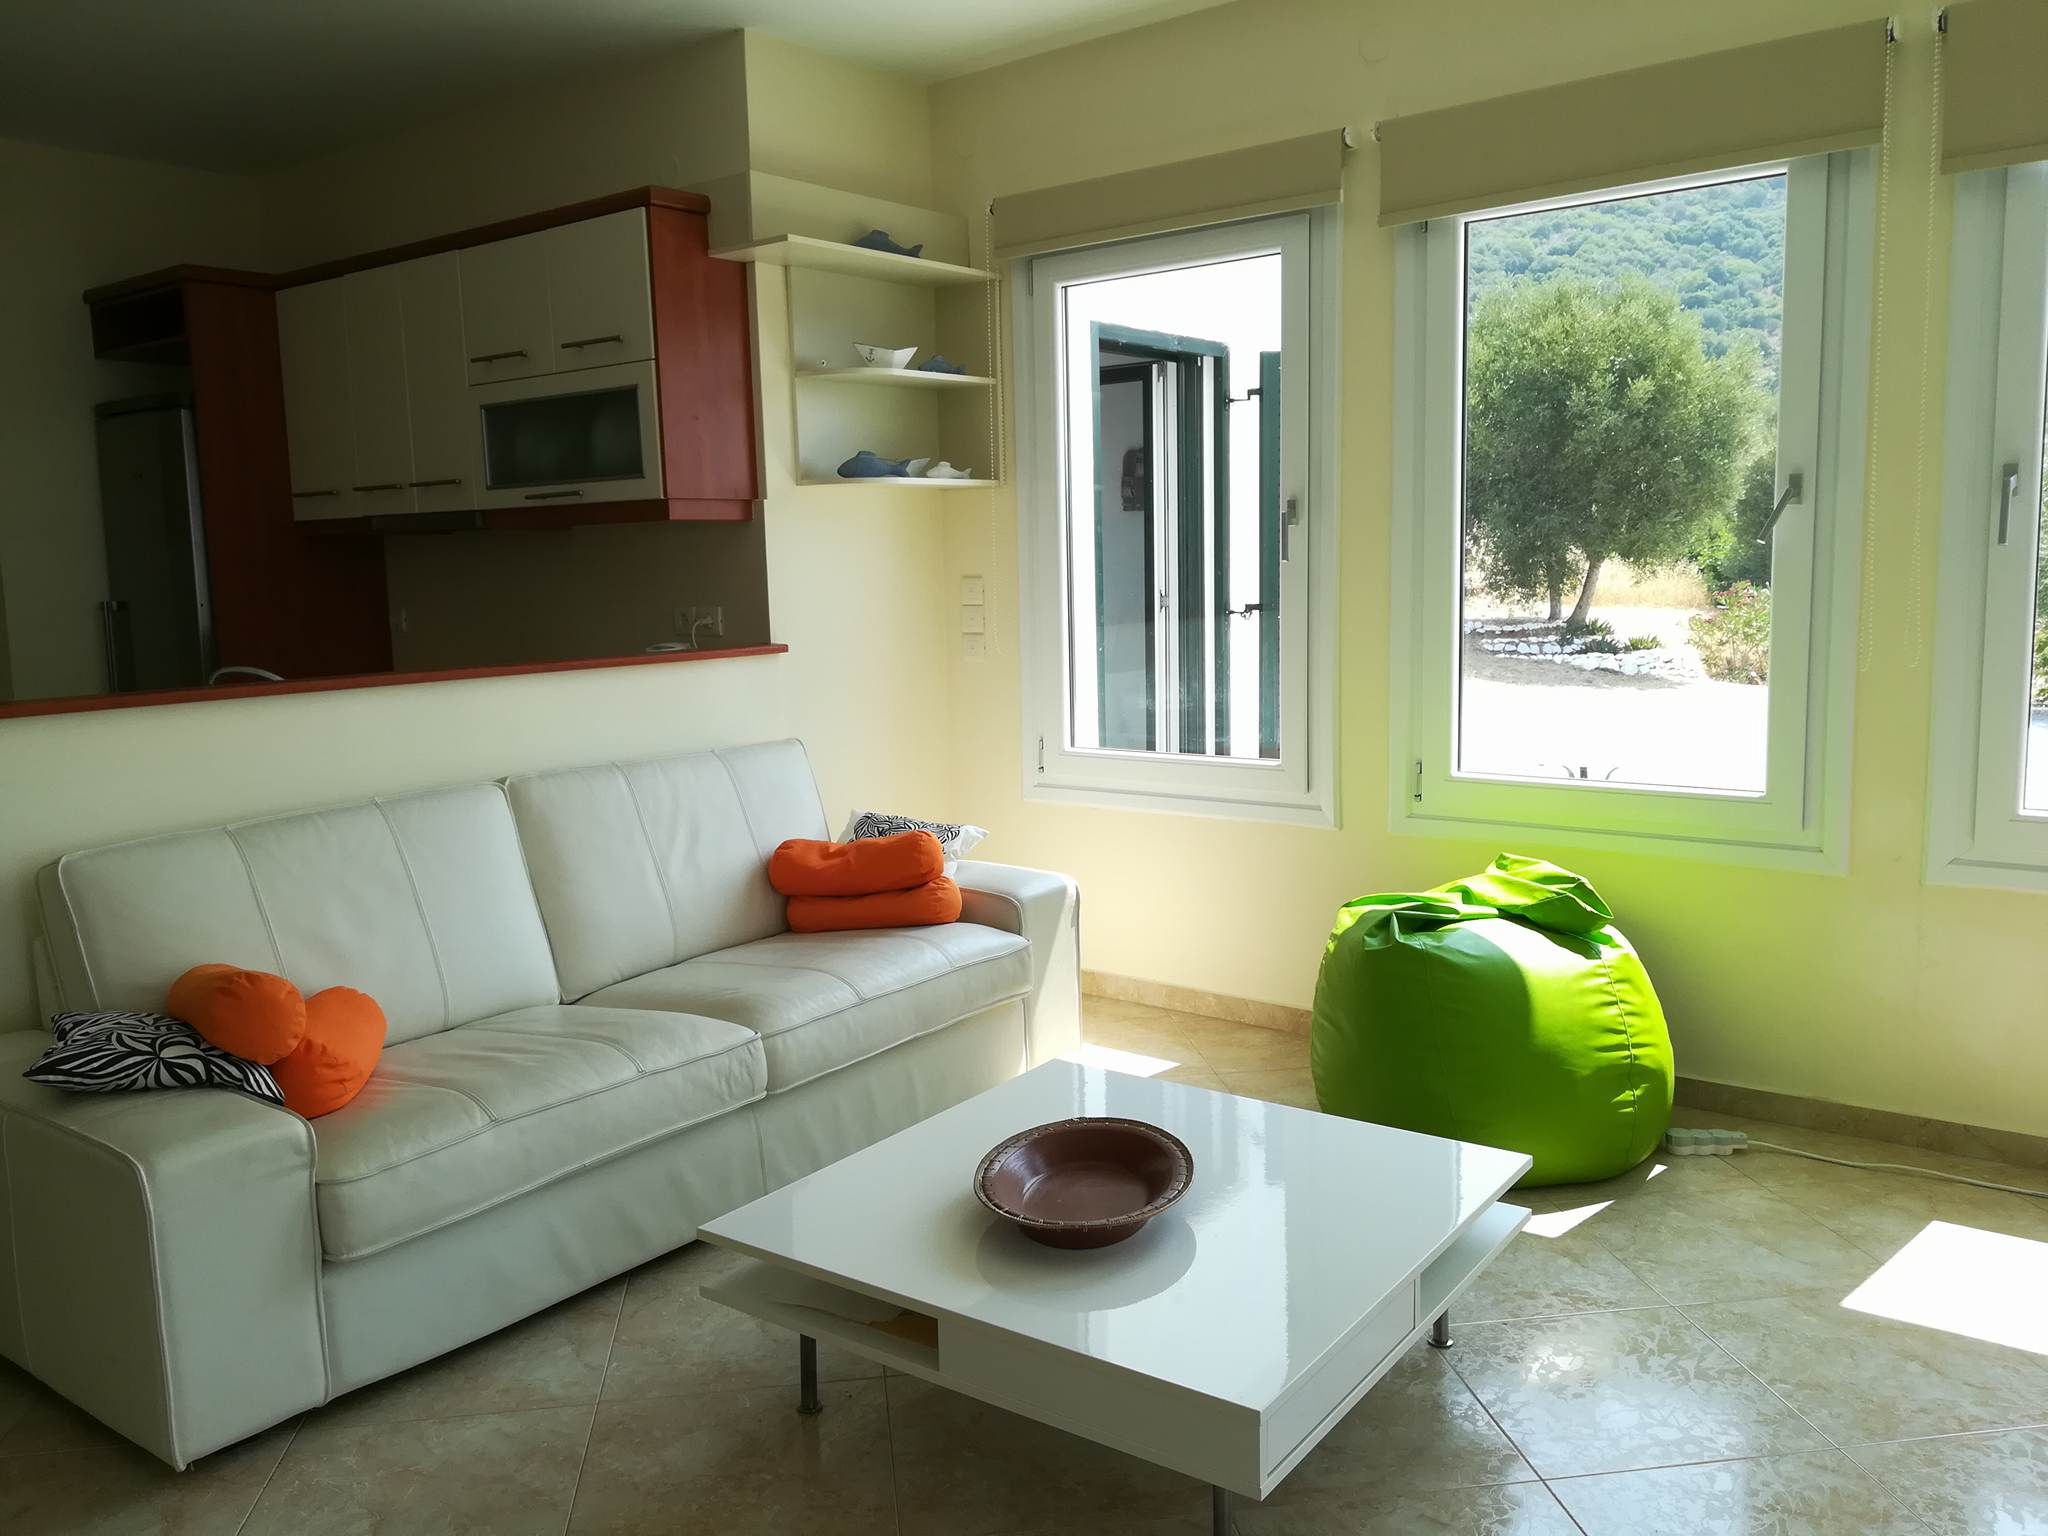 Samos Option 2 (80 sq.m-2 bedrooms)